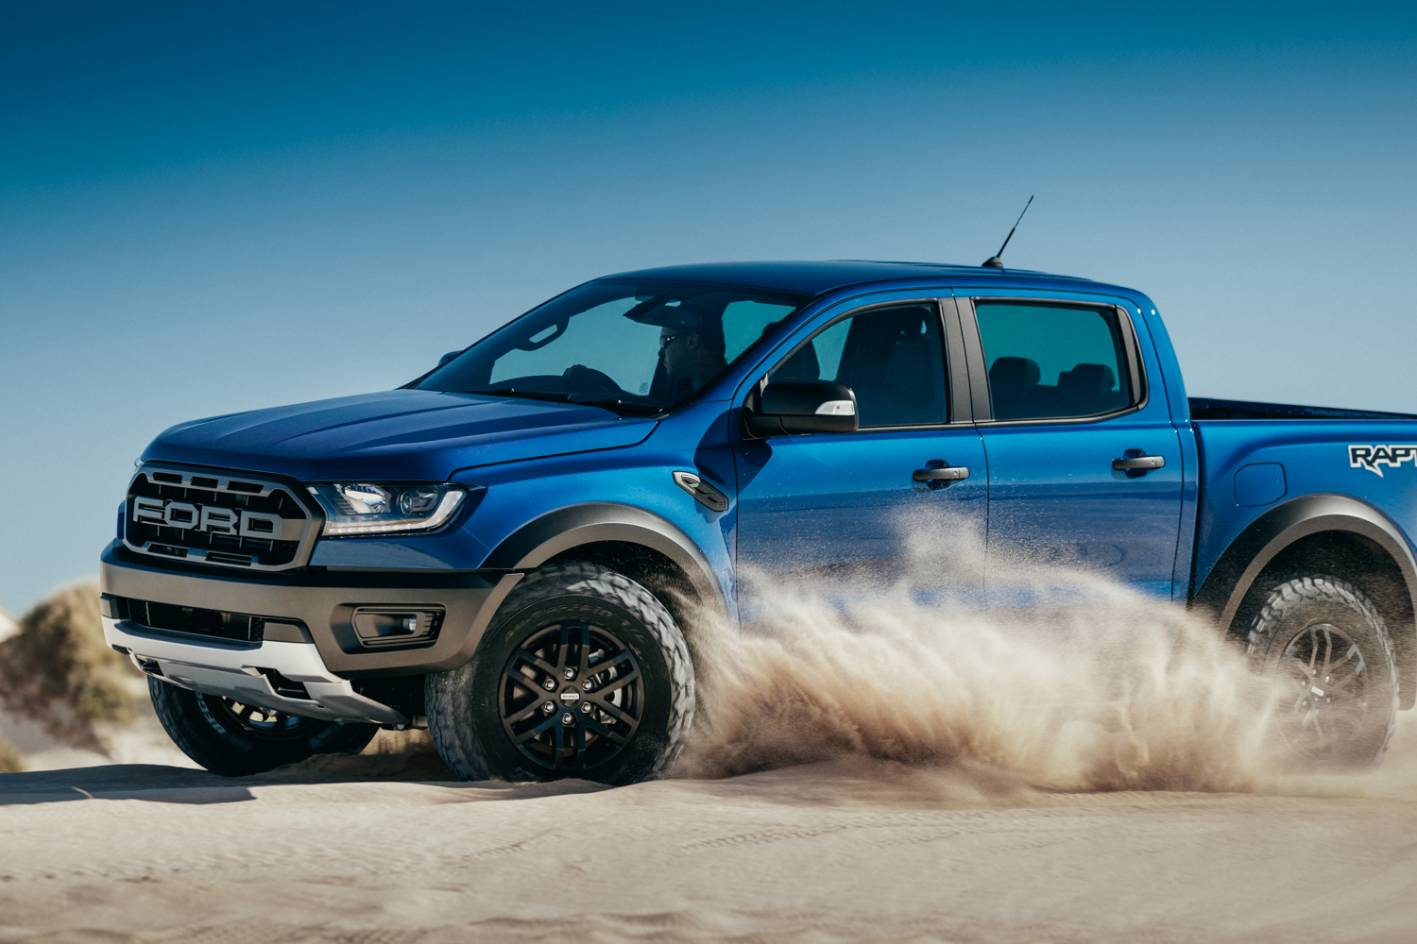 157kw 500nm 2018 ford ranger raptor revealed photos and details practical motoring. Black Bedroom Furniture Sets. Home Design Ideas